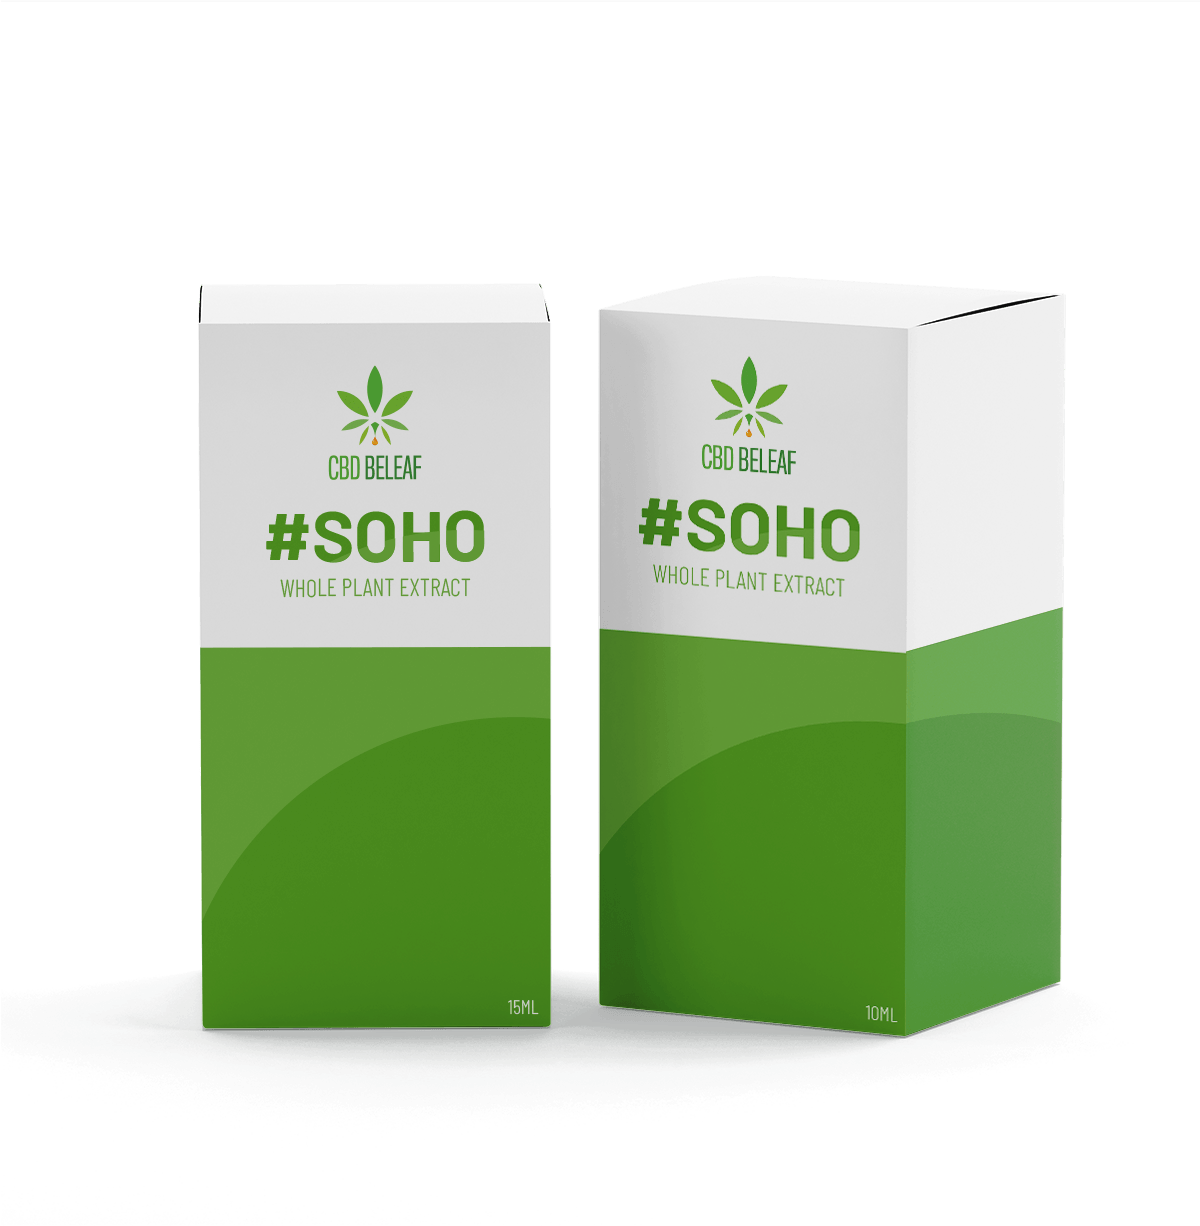 CBD BeLeaf boxes standing upright